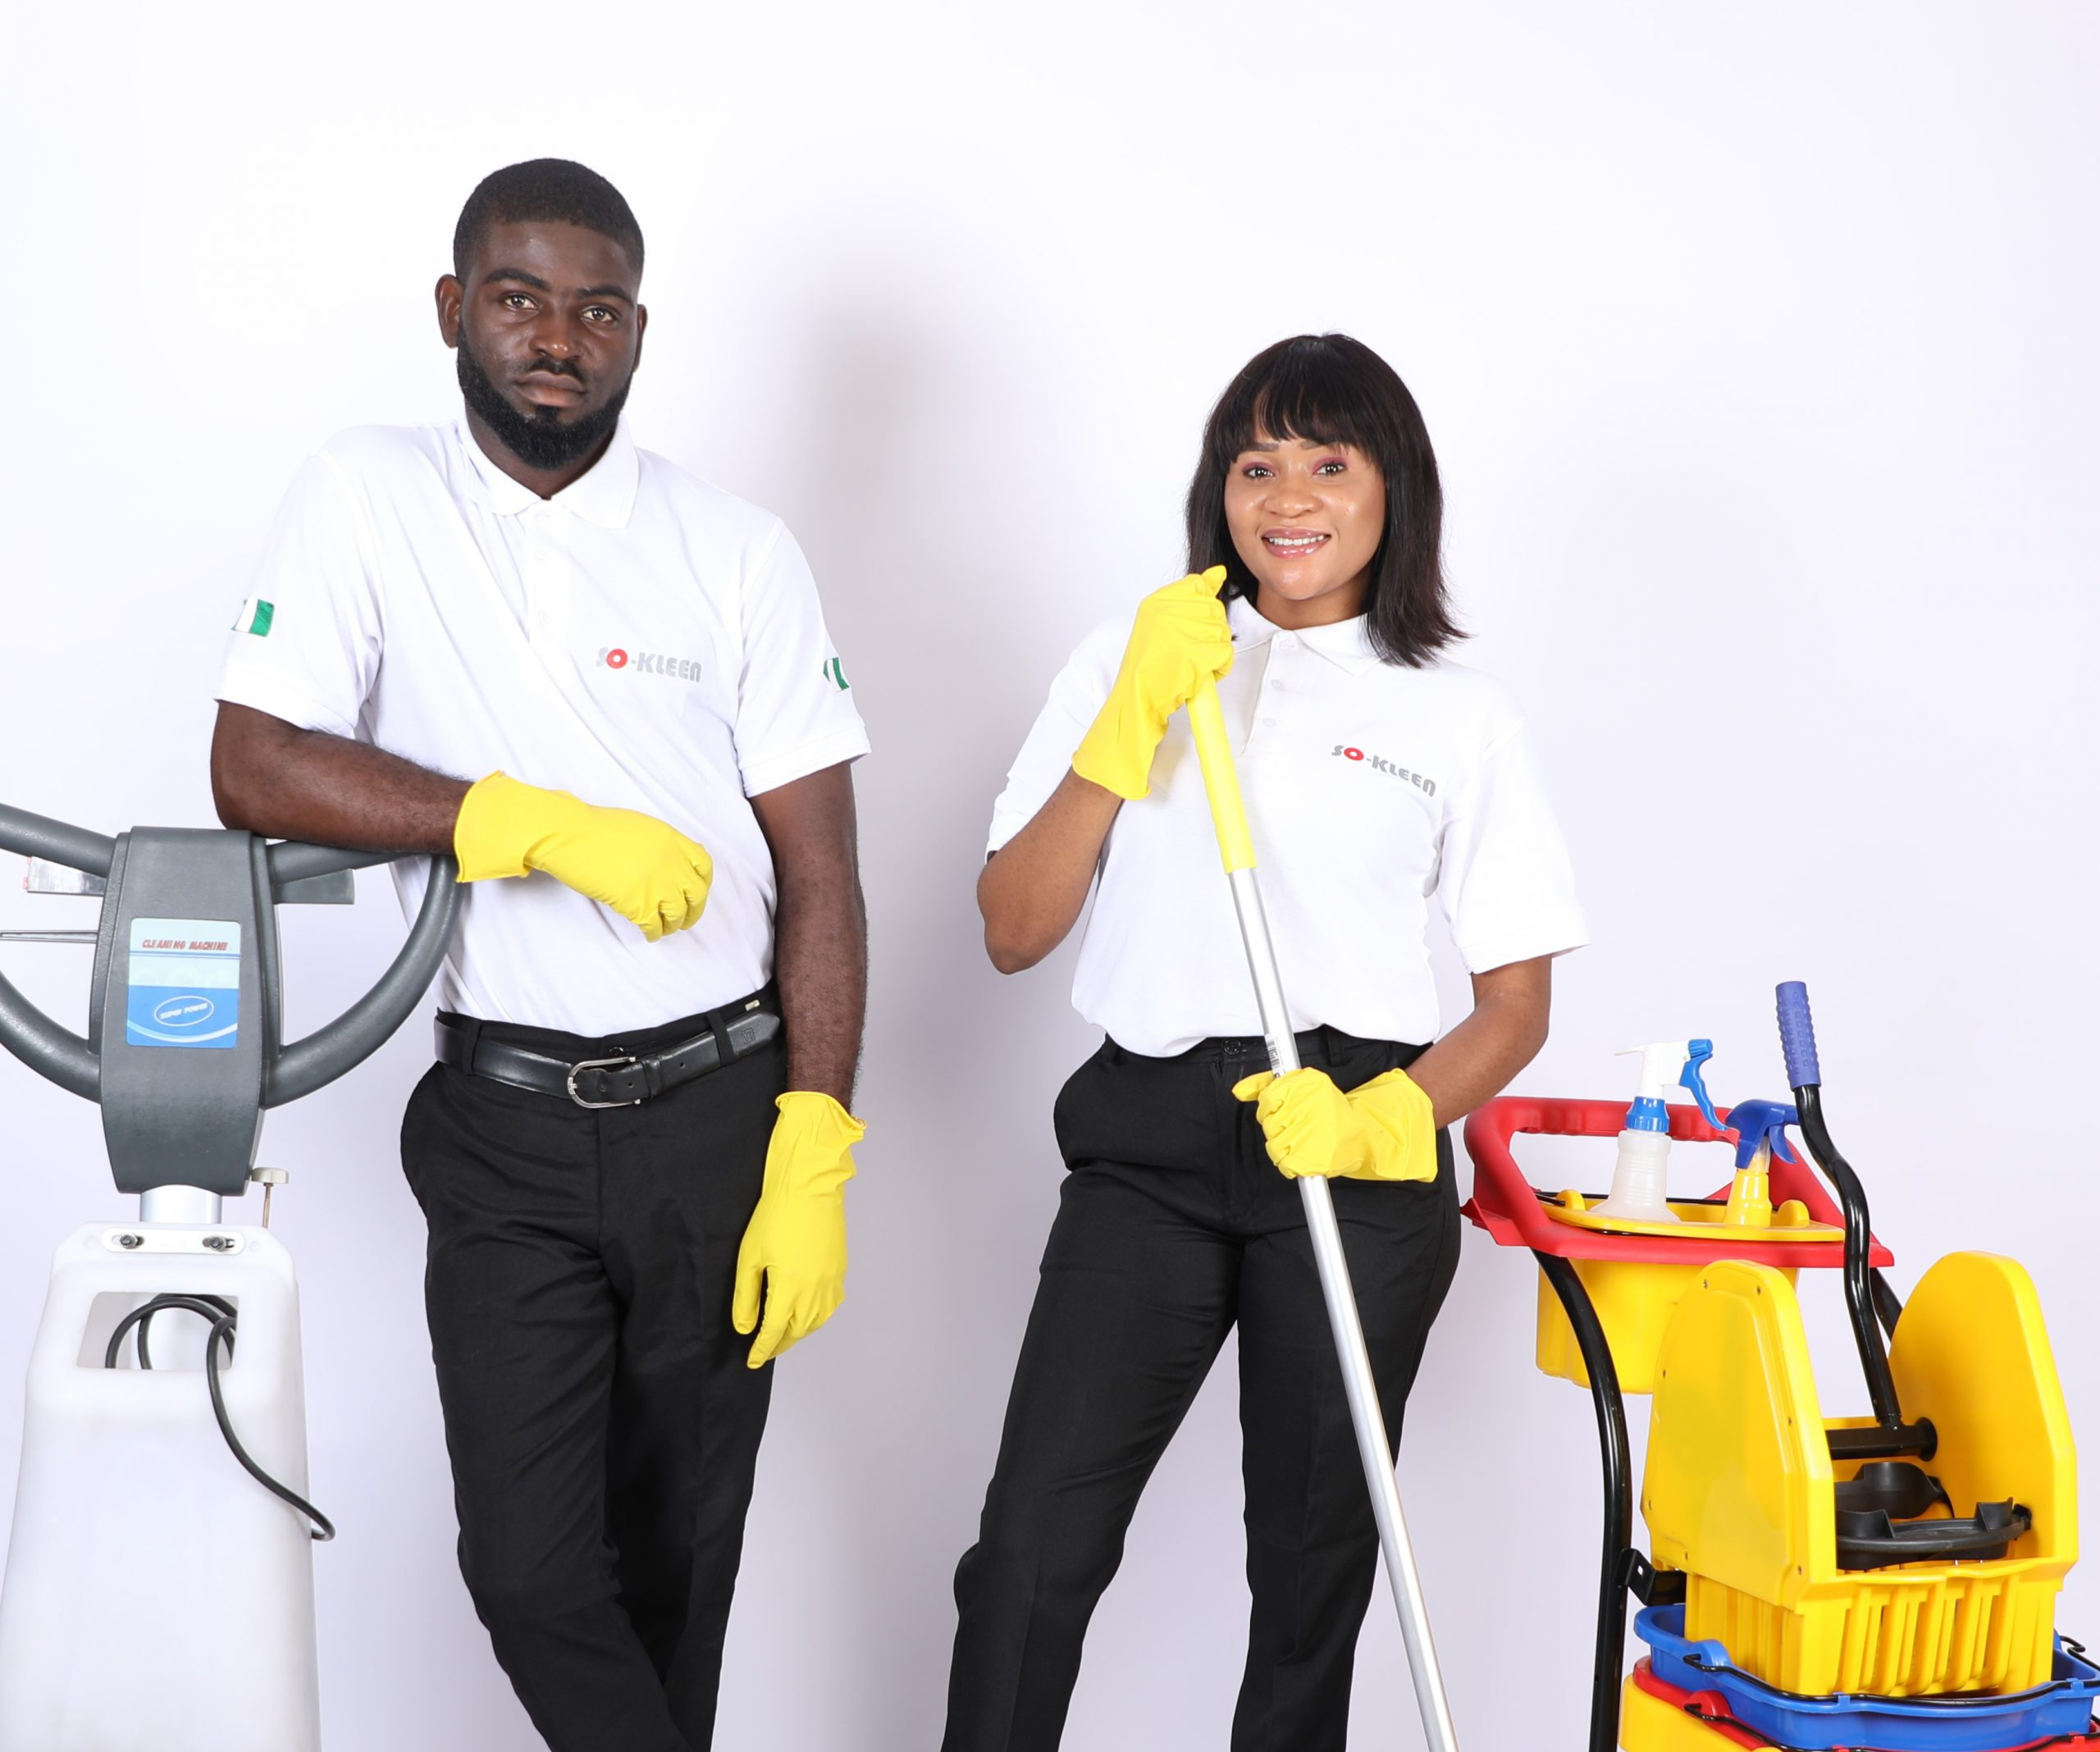 Cleaning Companies in Nigeria